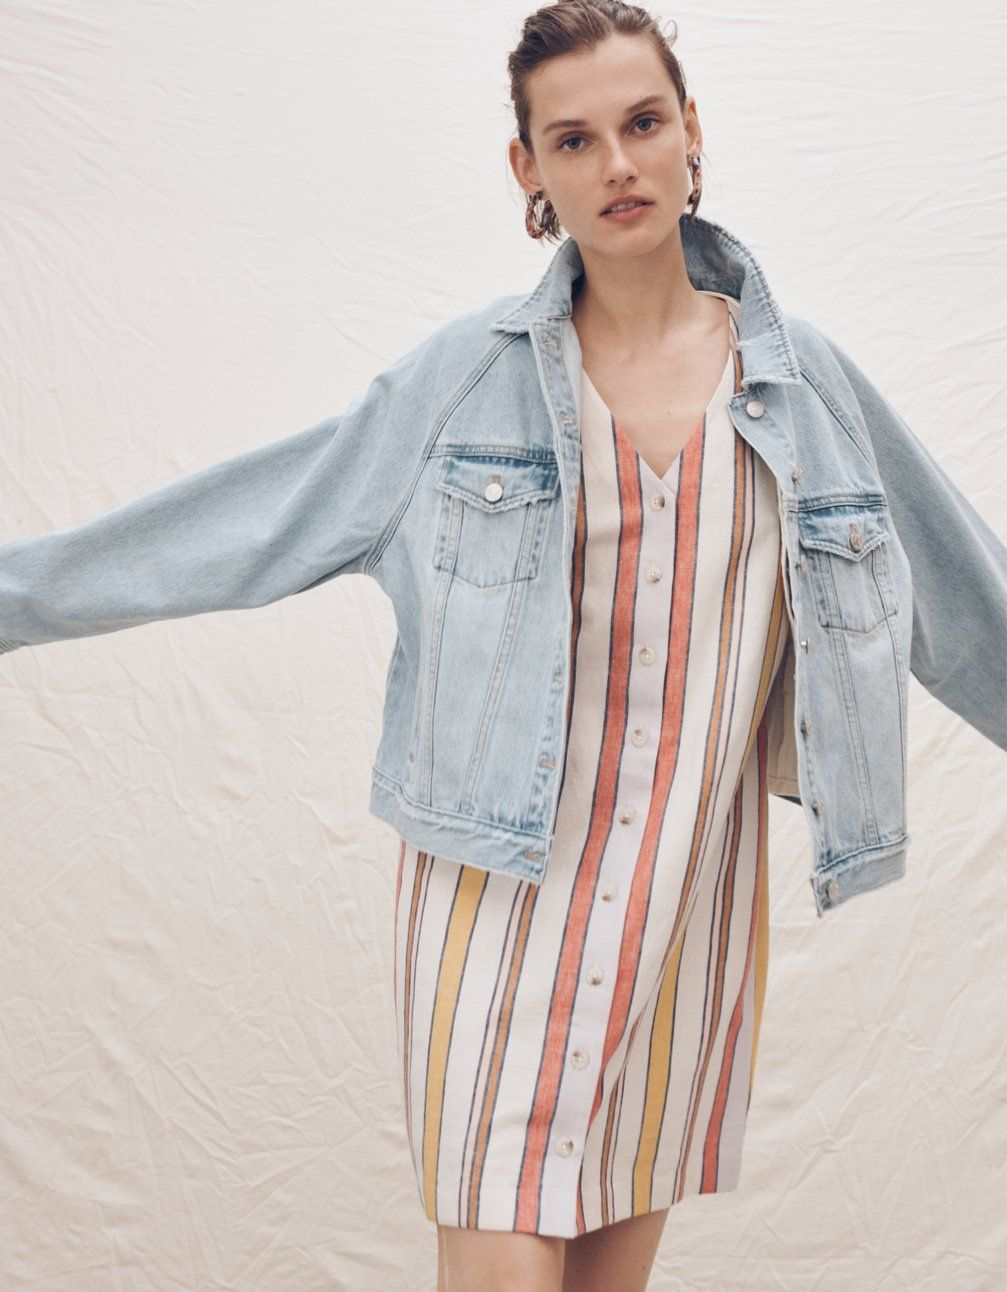 5980cc7d4d madewell raglan oversized jean jacket worn with button-front easy dress.